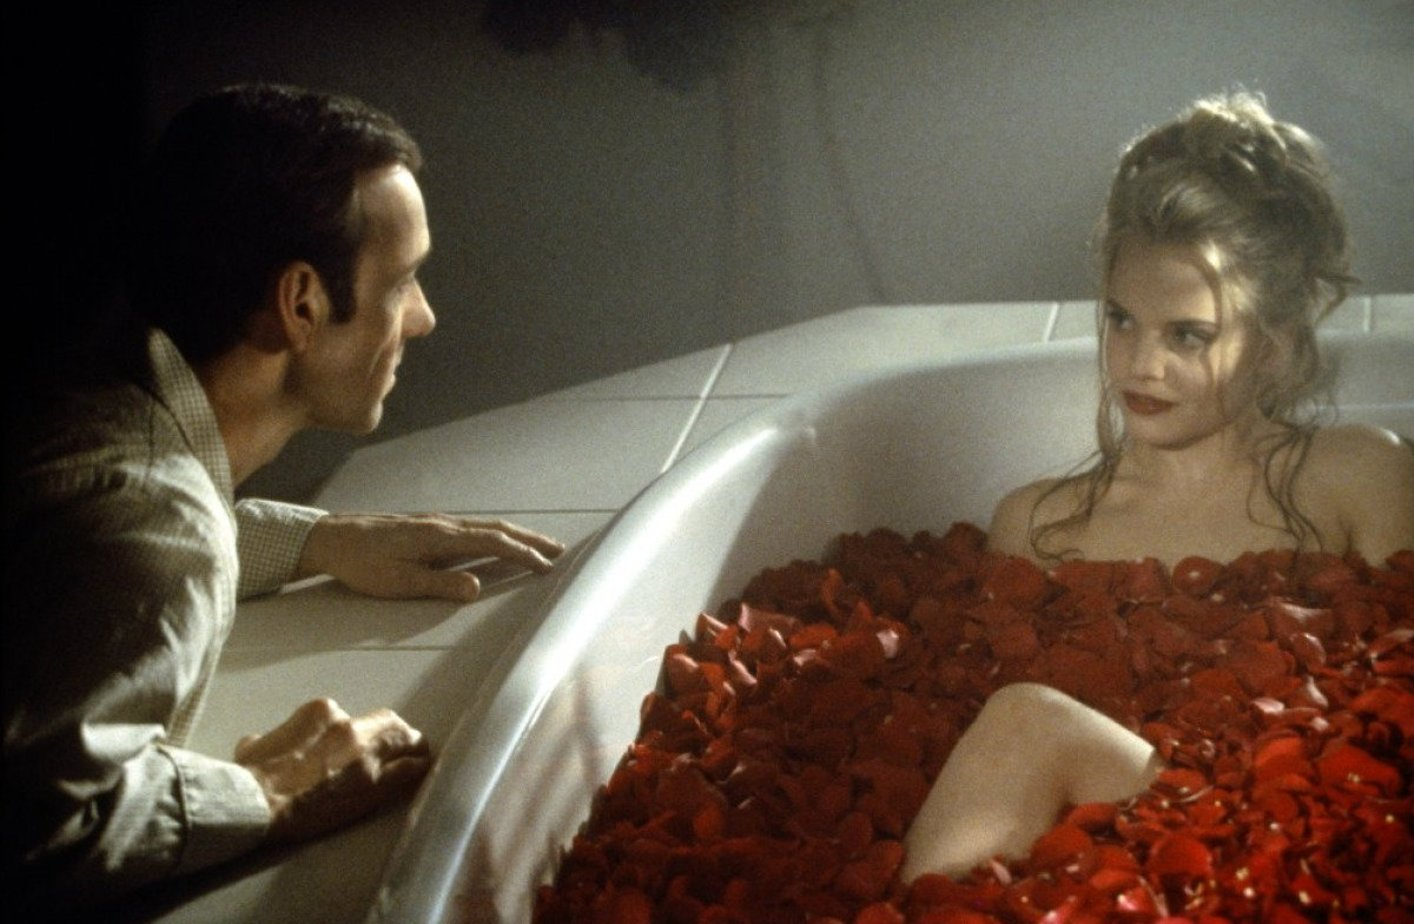 american beauty lighting essay Existentialism: american beauty american beauty is a movie that sets in suburban america the story is about lester, whom is a middle-aged writer working in a magazine company he was having a midlife crisis where he felt lonely and numbed by continuous unchanging routine of his everyday life.